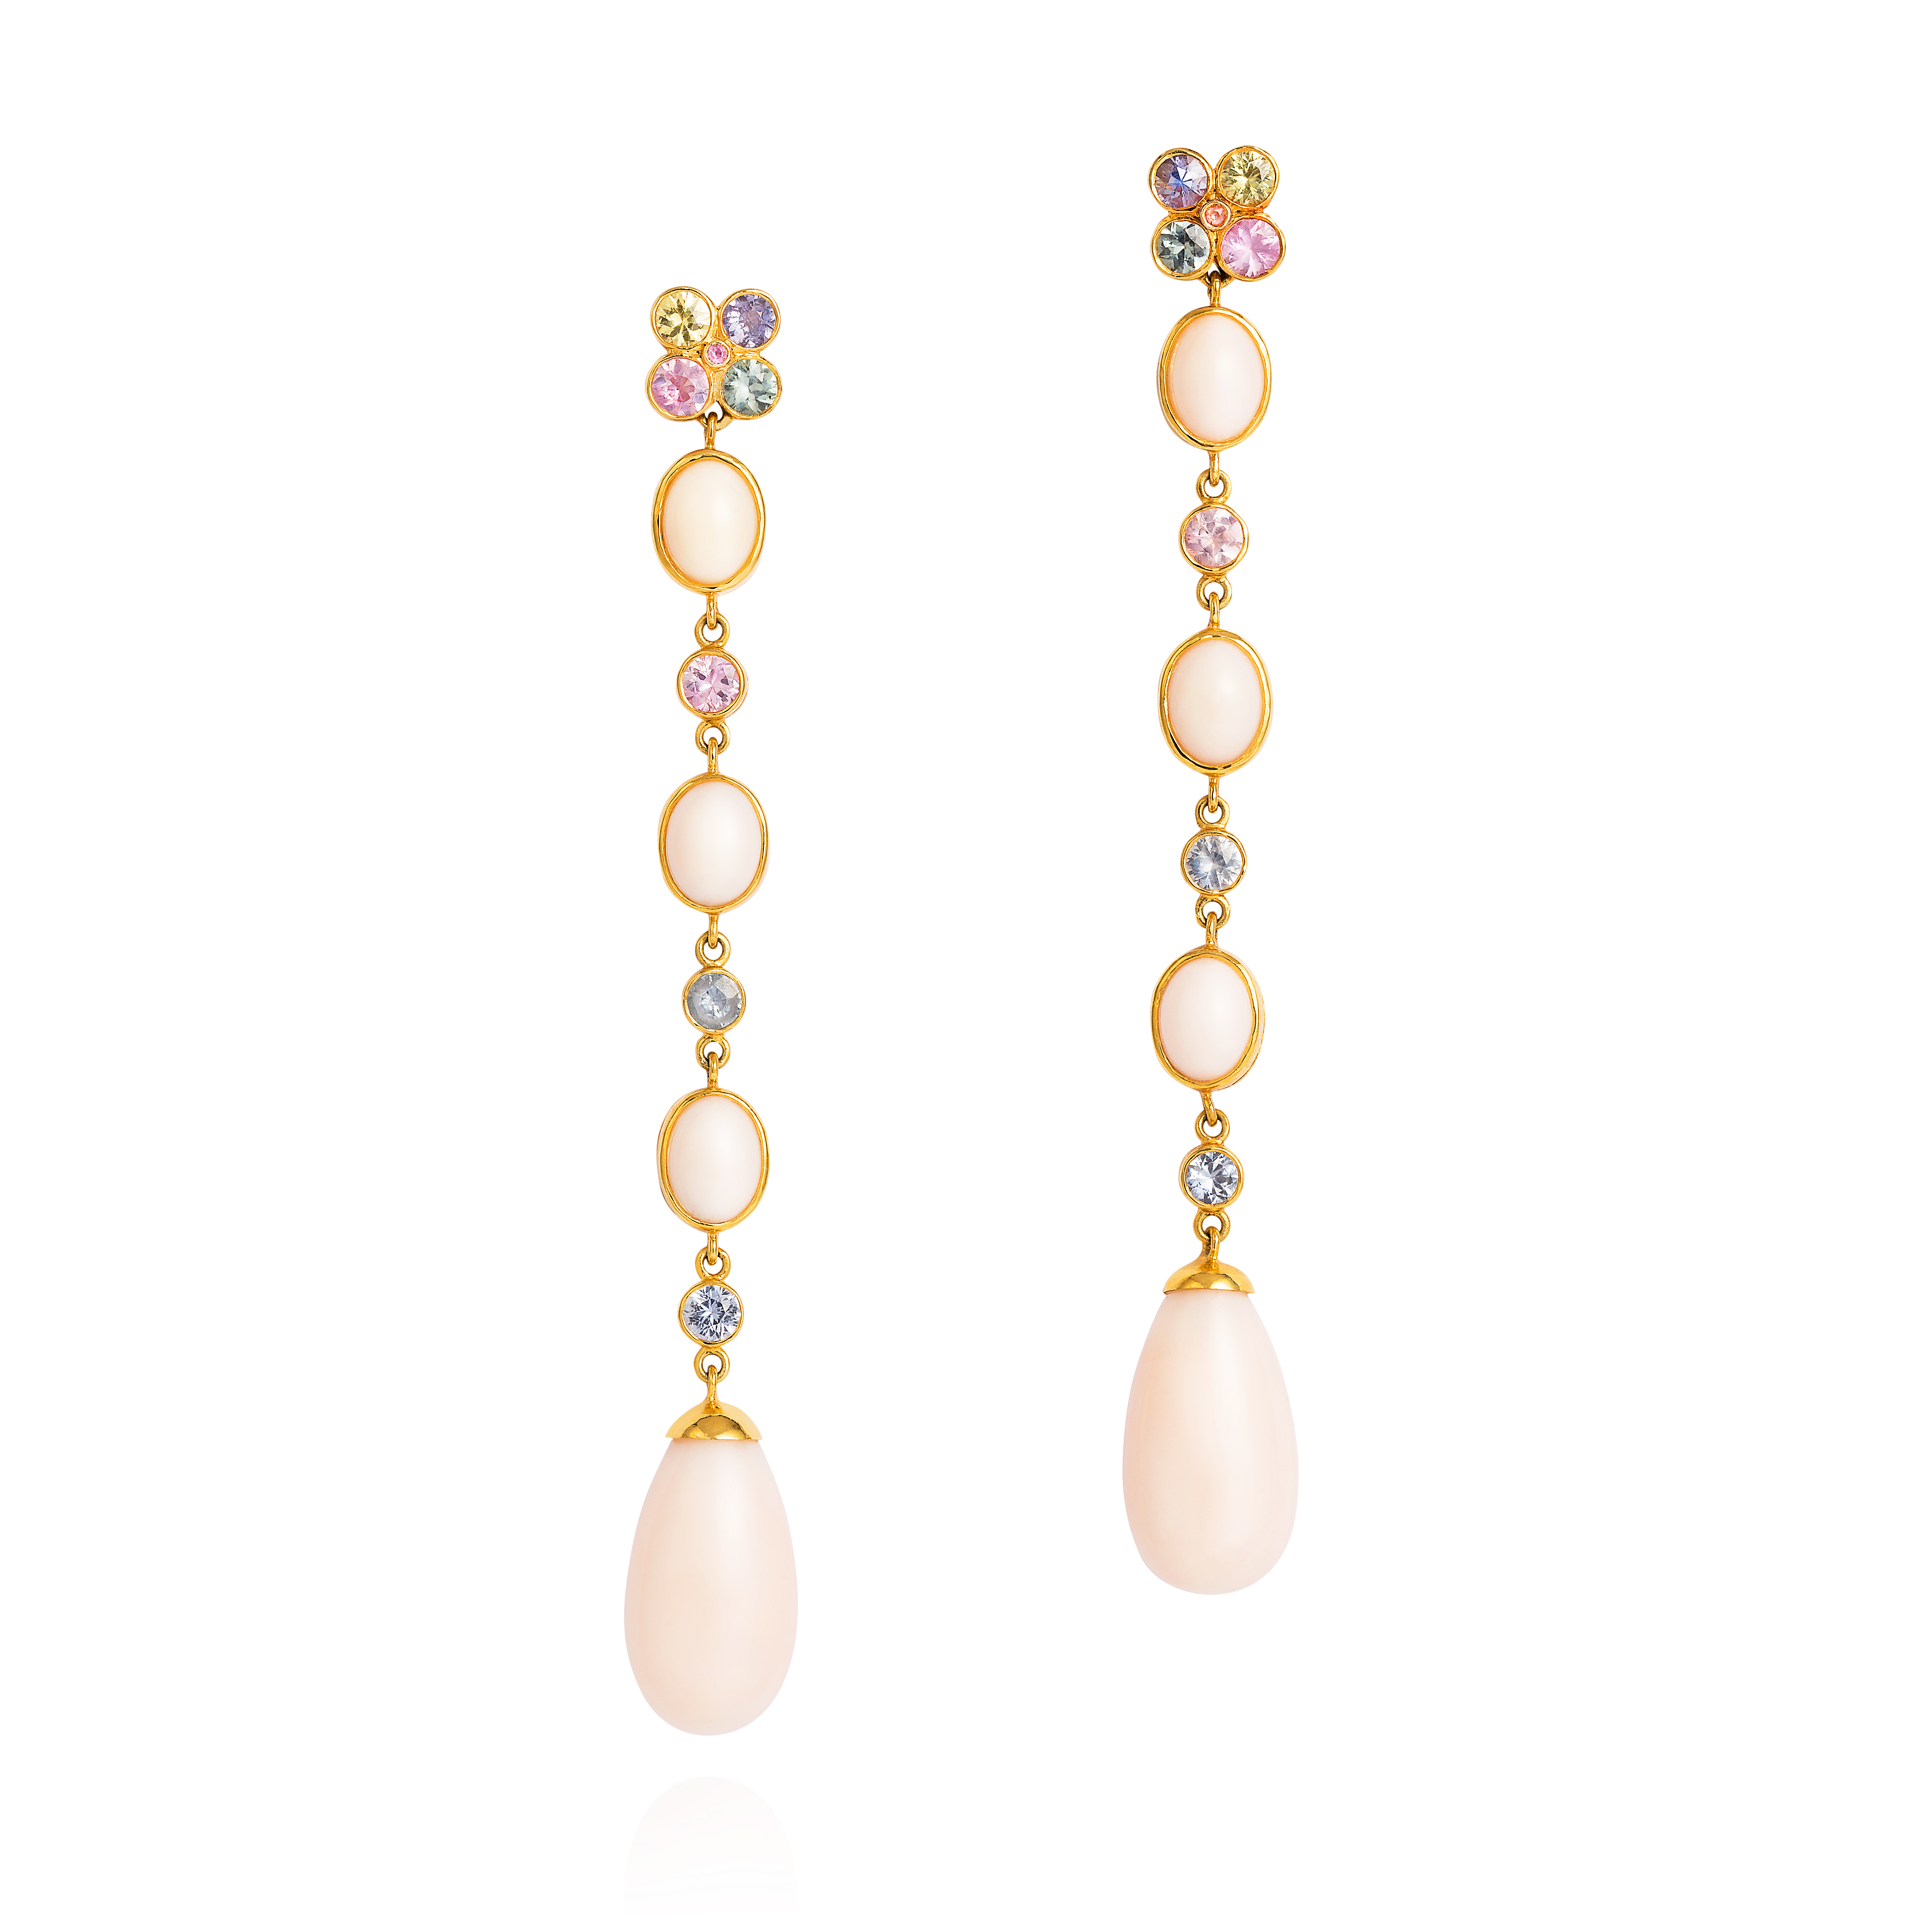 Wish Earrings – Fancy Sapphires And Pale Pink Coral From The Taiwan Sea In 18k Gold